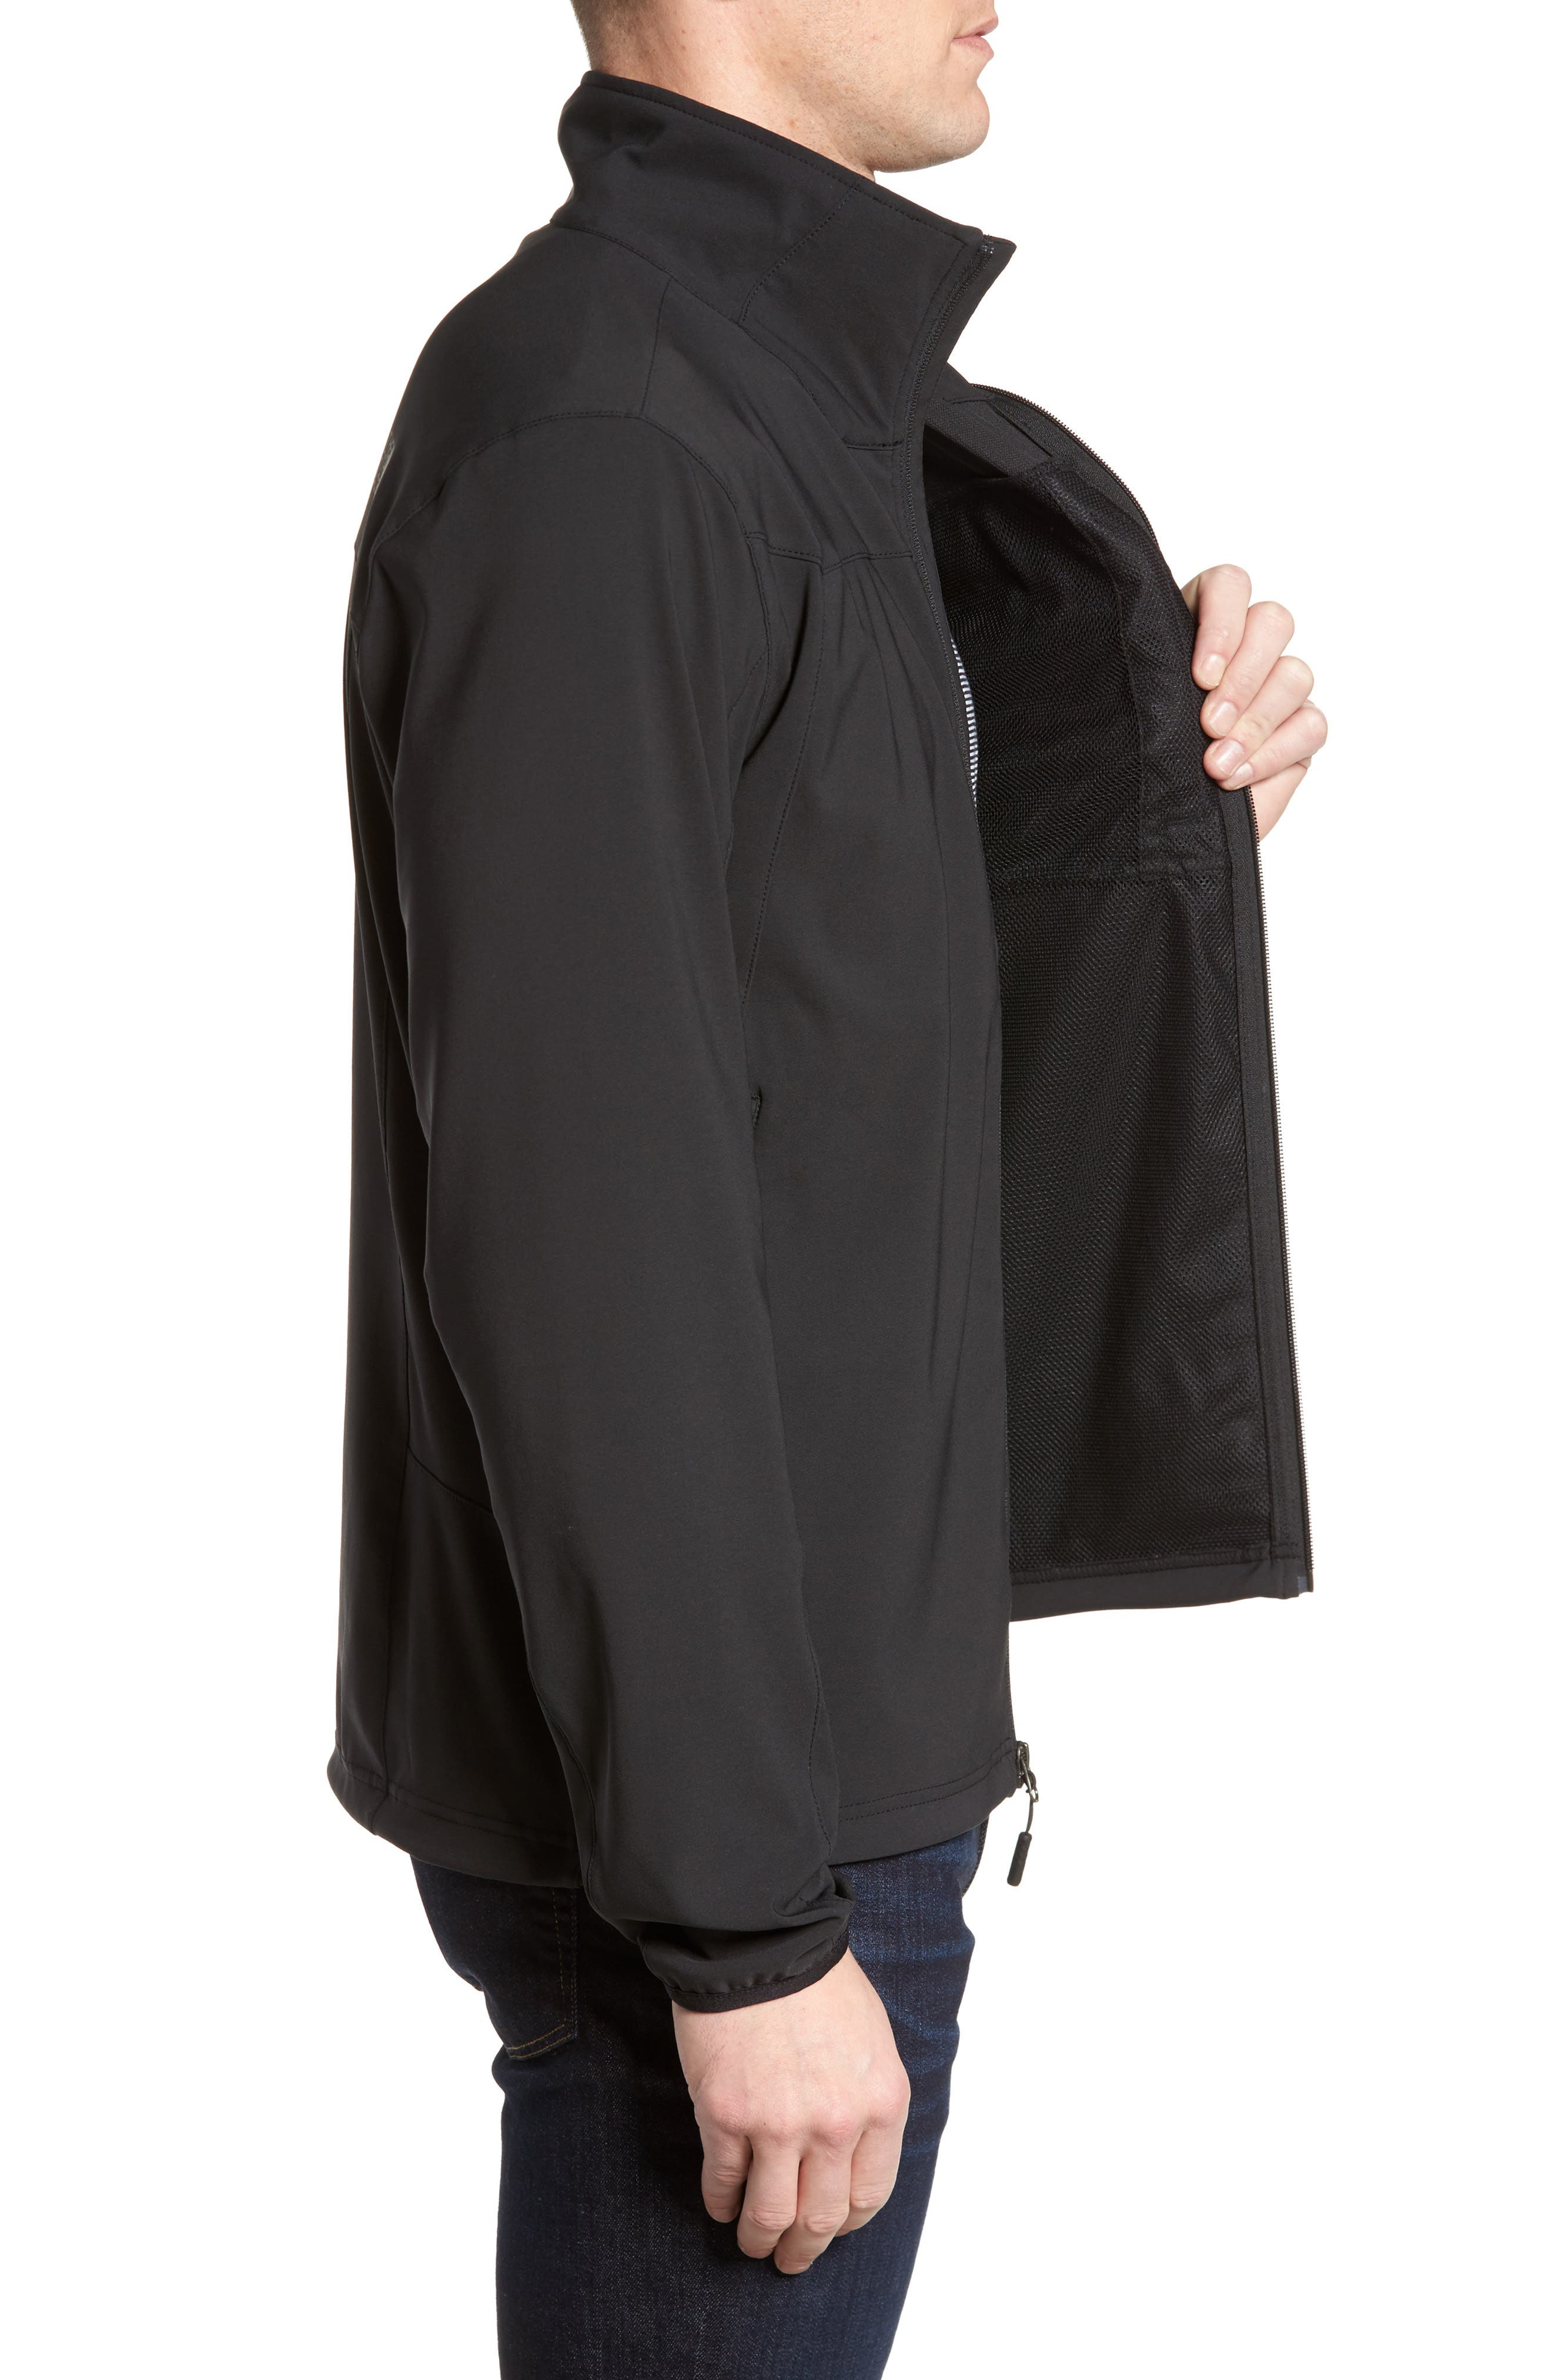 Apex Nimble Jacket,                             Alternate thumbnail 3, color,                             BLACK/ BLACK